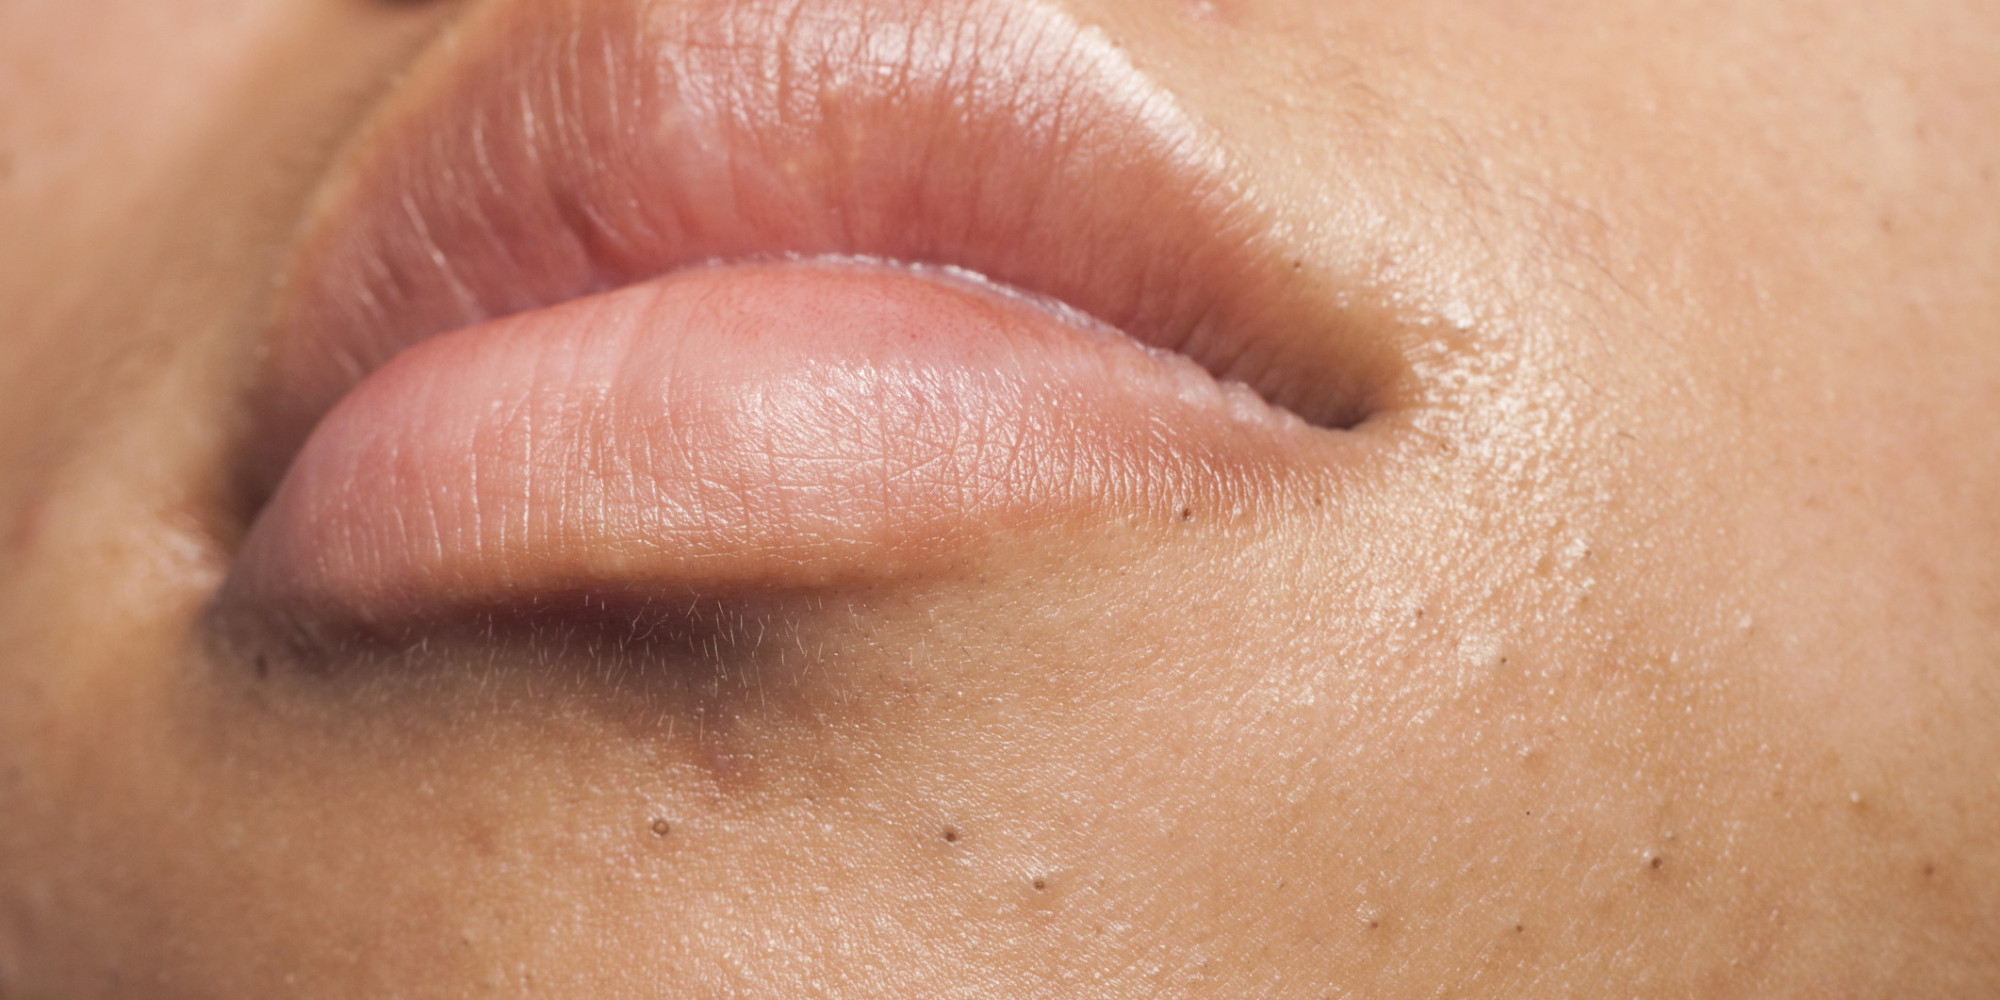 Blackheads pimple under the lips area